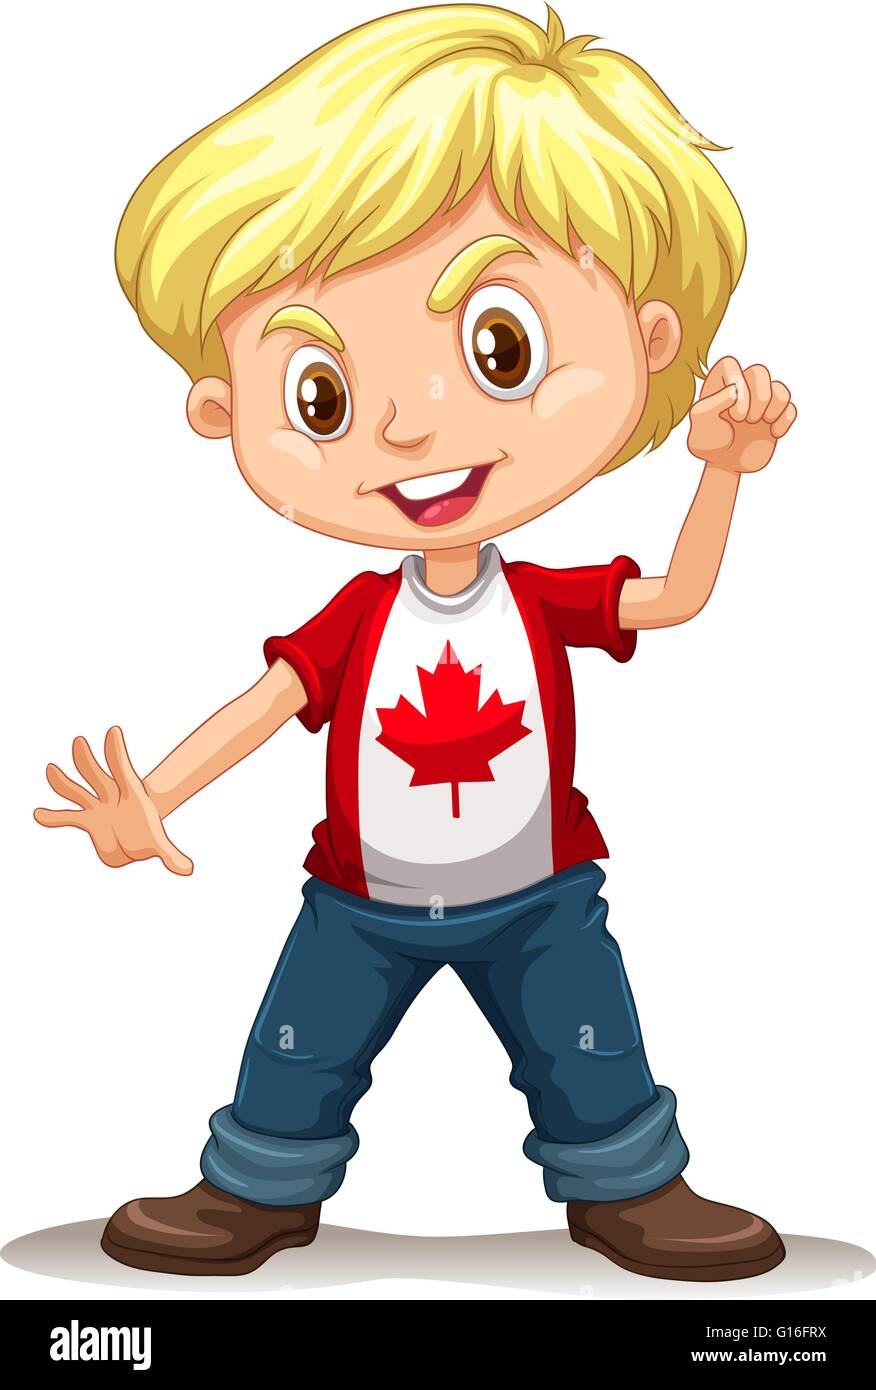 Canadian boy standing alone illustration stock vector